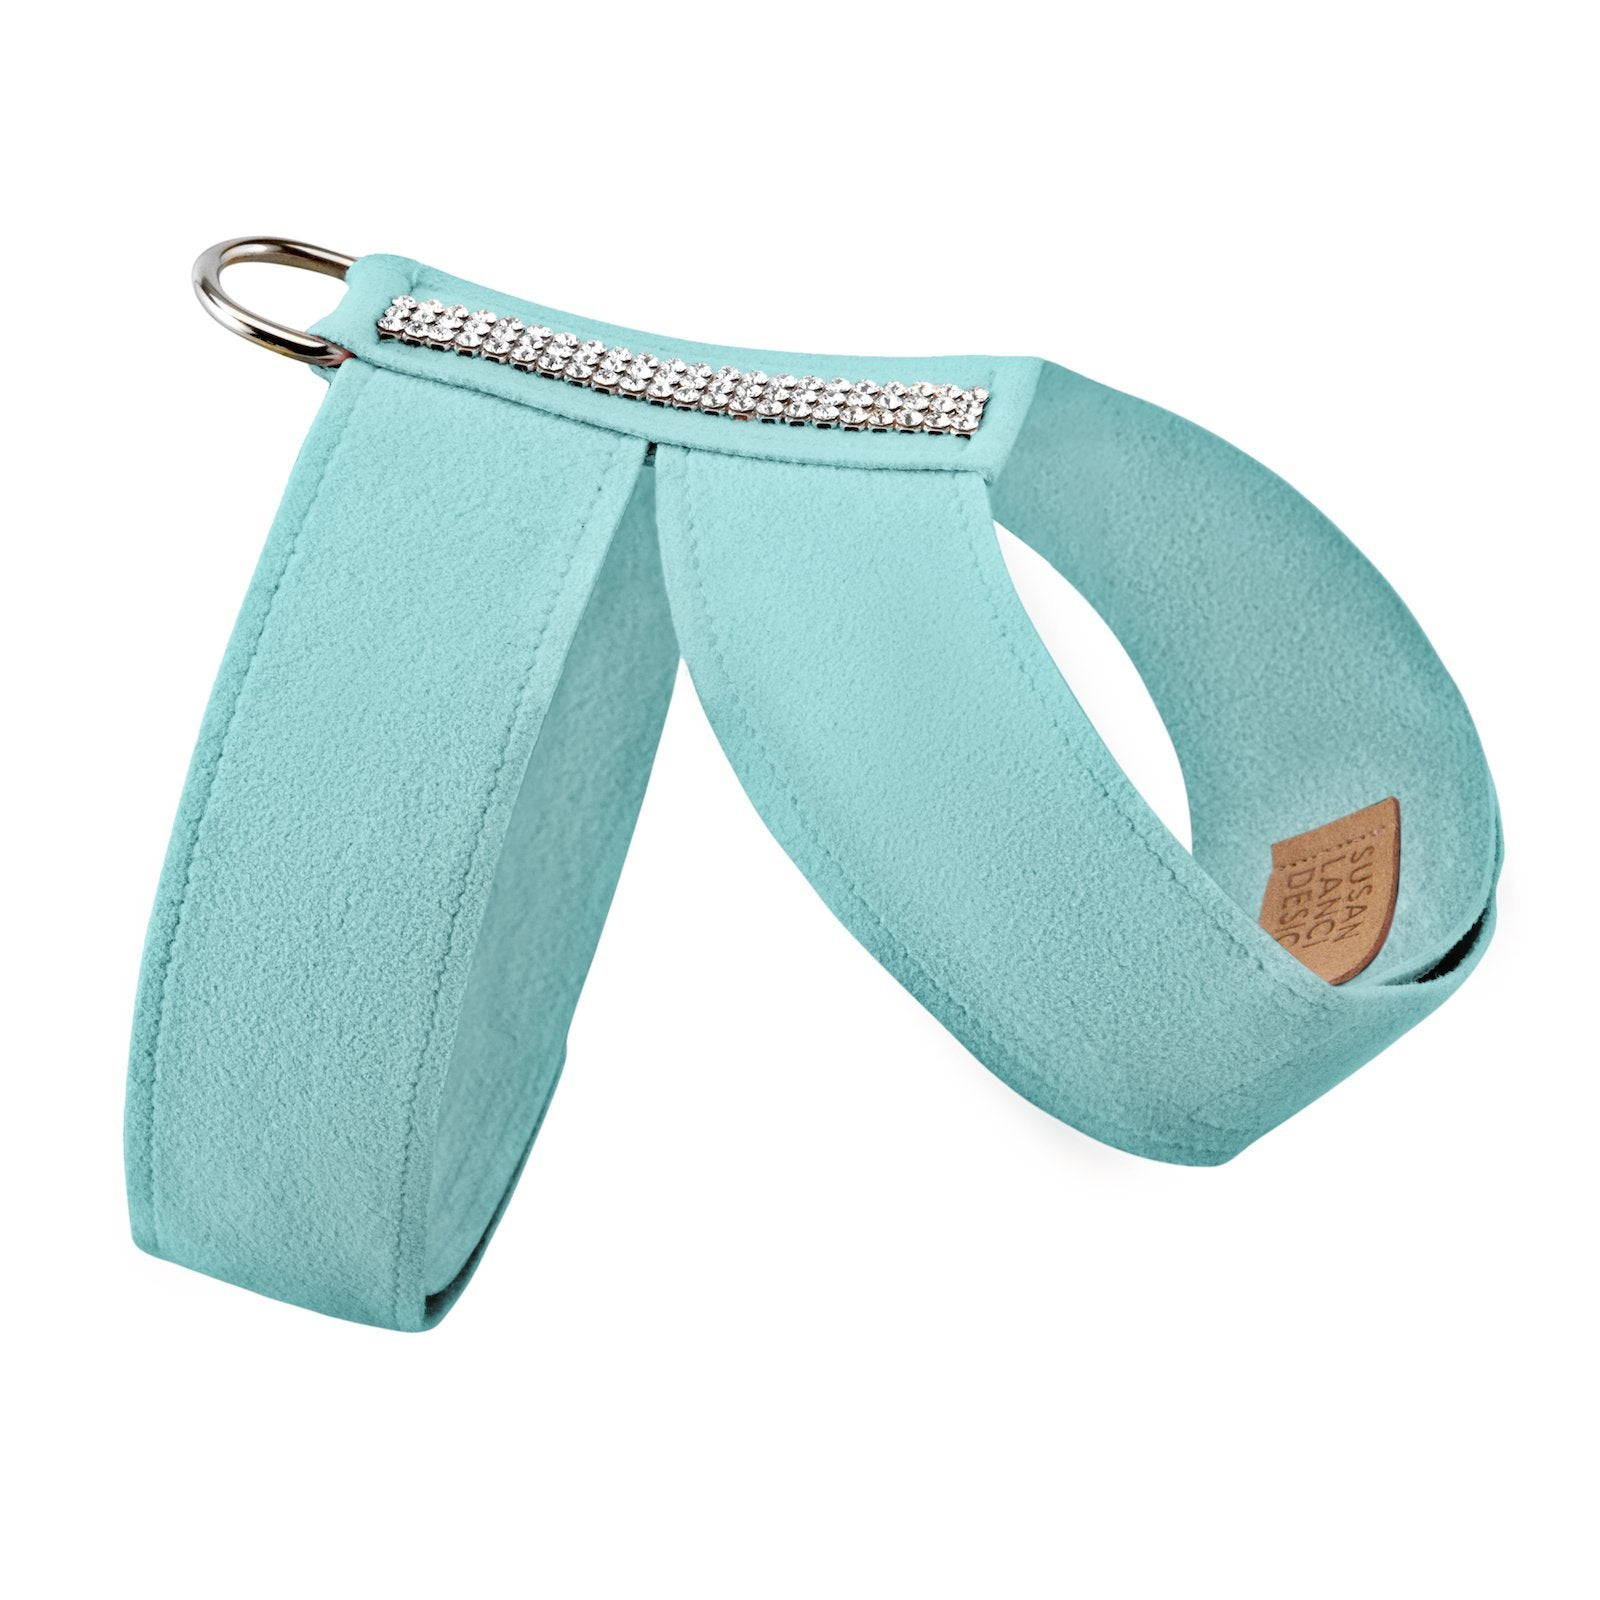 Giltmore 3-Row Crystal Pet Harness: Tiffi Blue